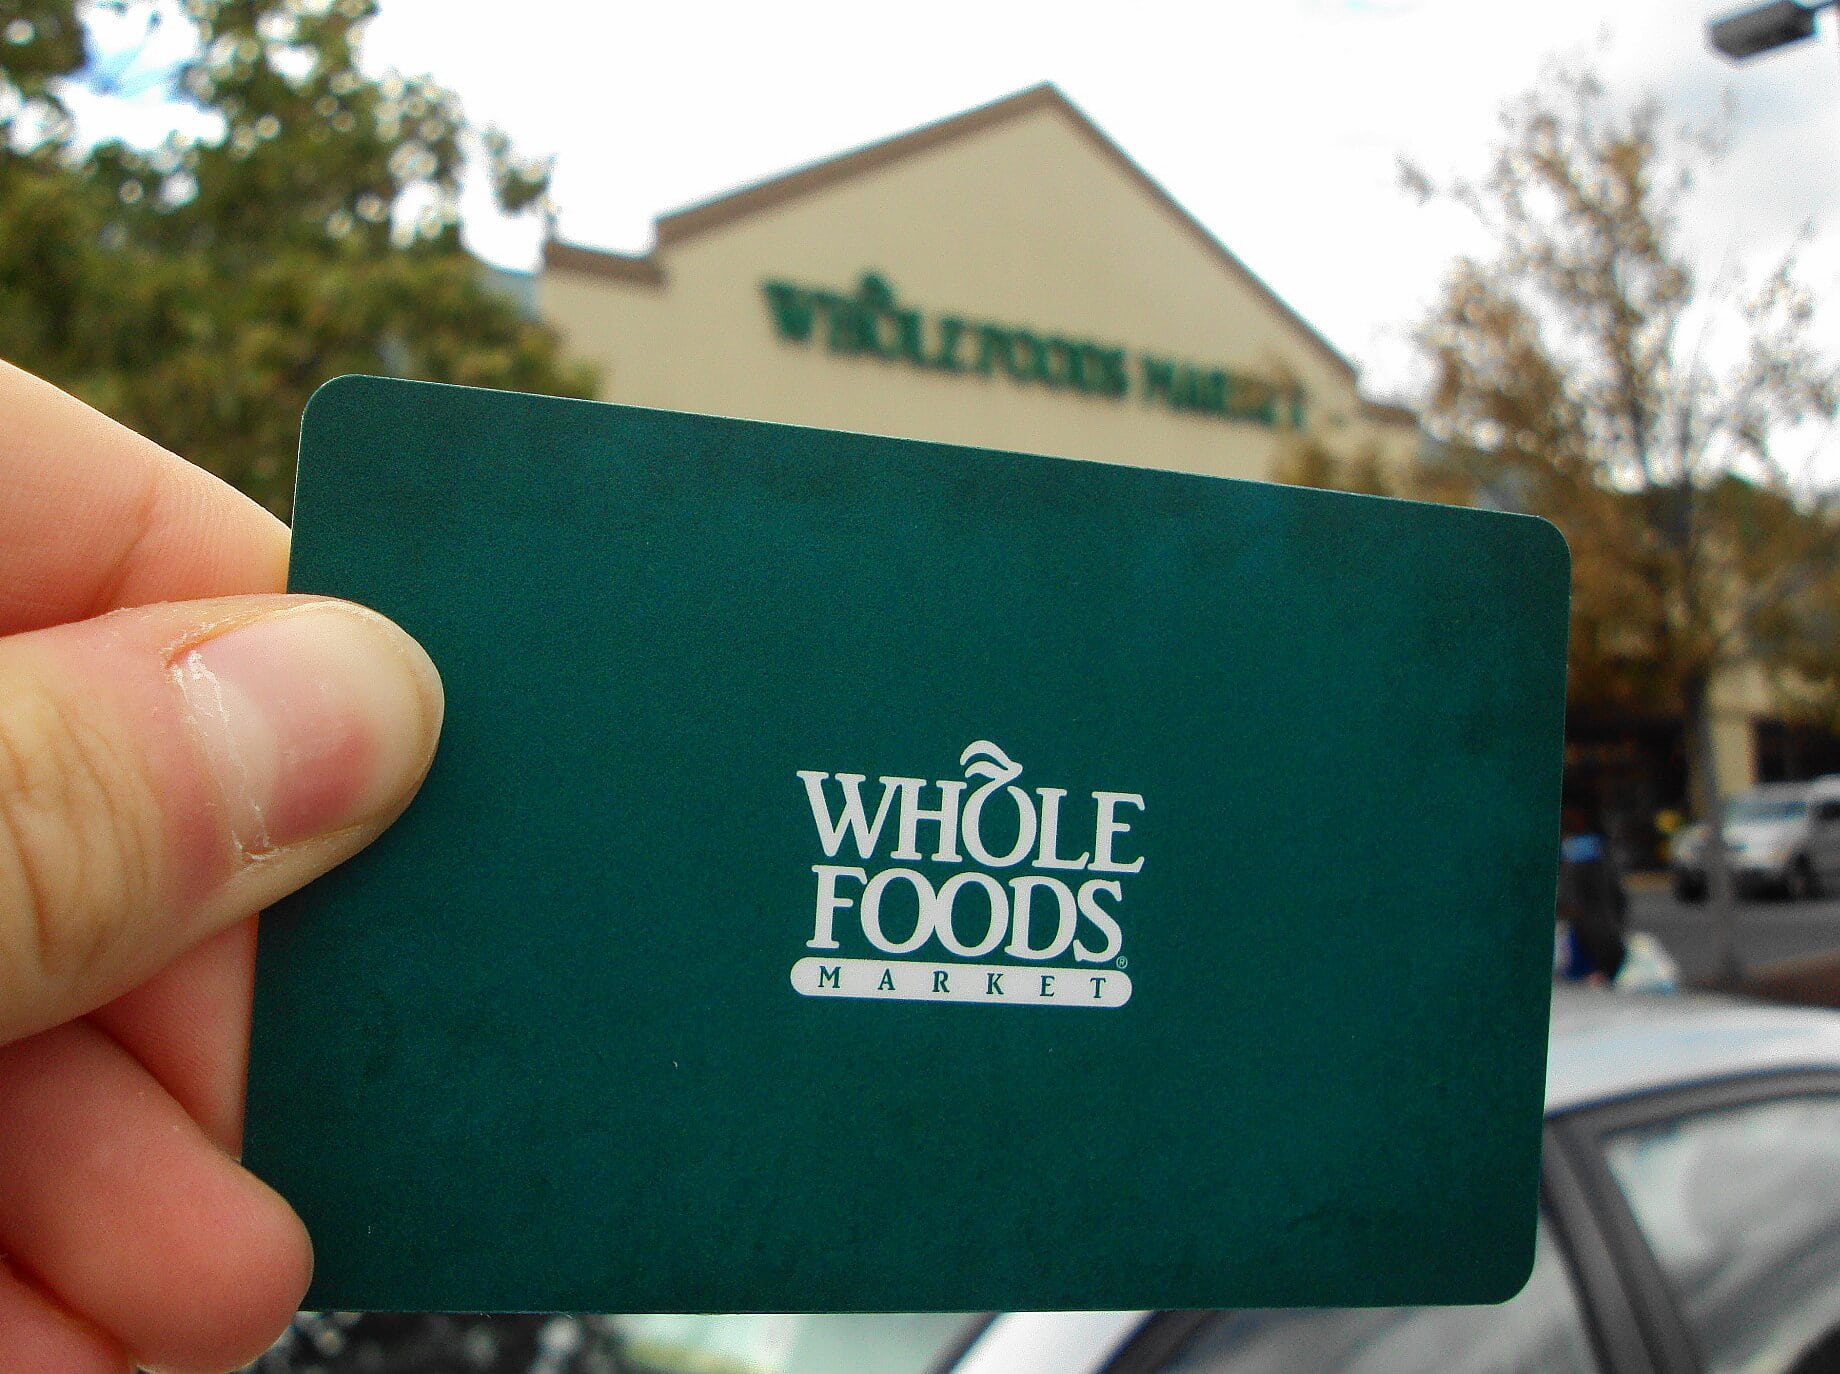 Whole Foods Markets makes their gift cards more eco-friendly